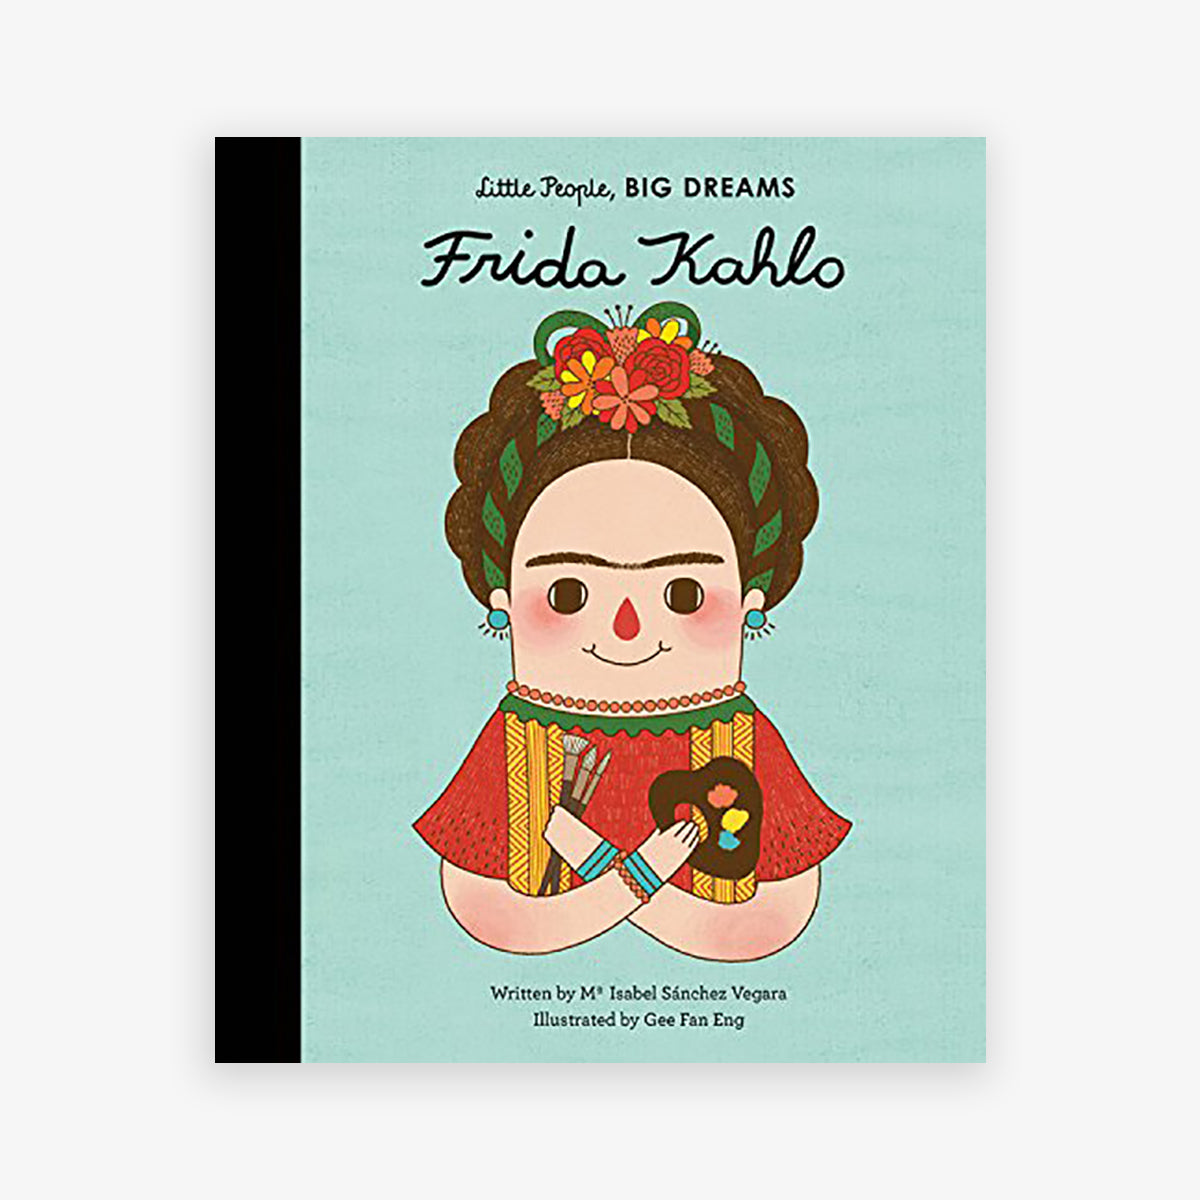 products/Book_LittlePeople_BIGDREAMS-FridaKahlo.jpg